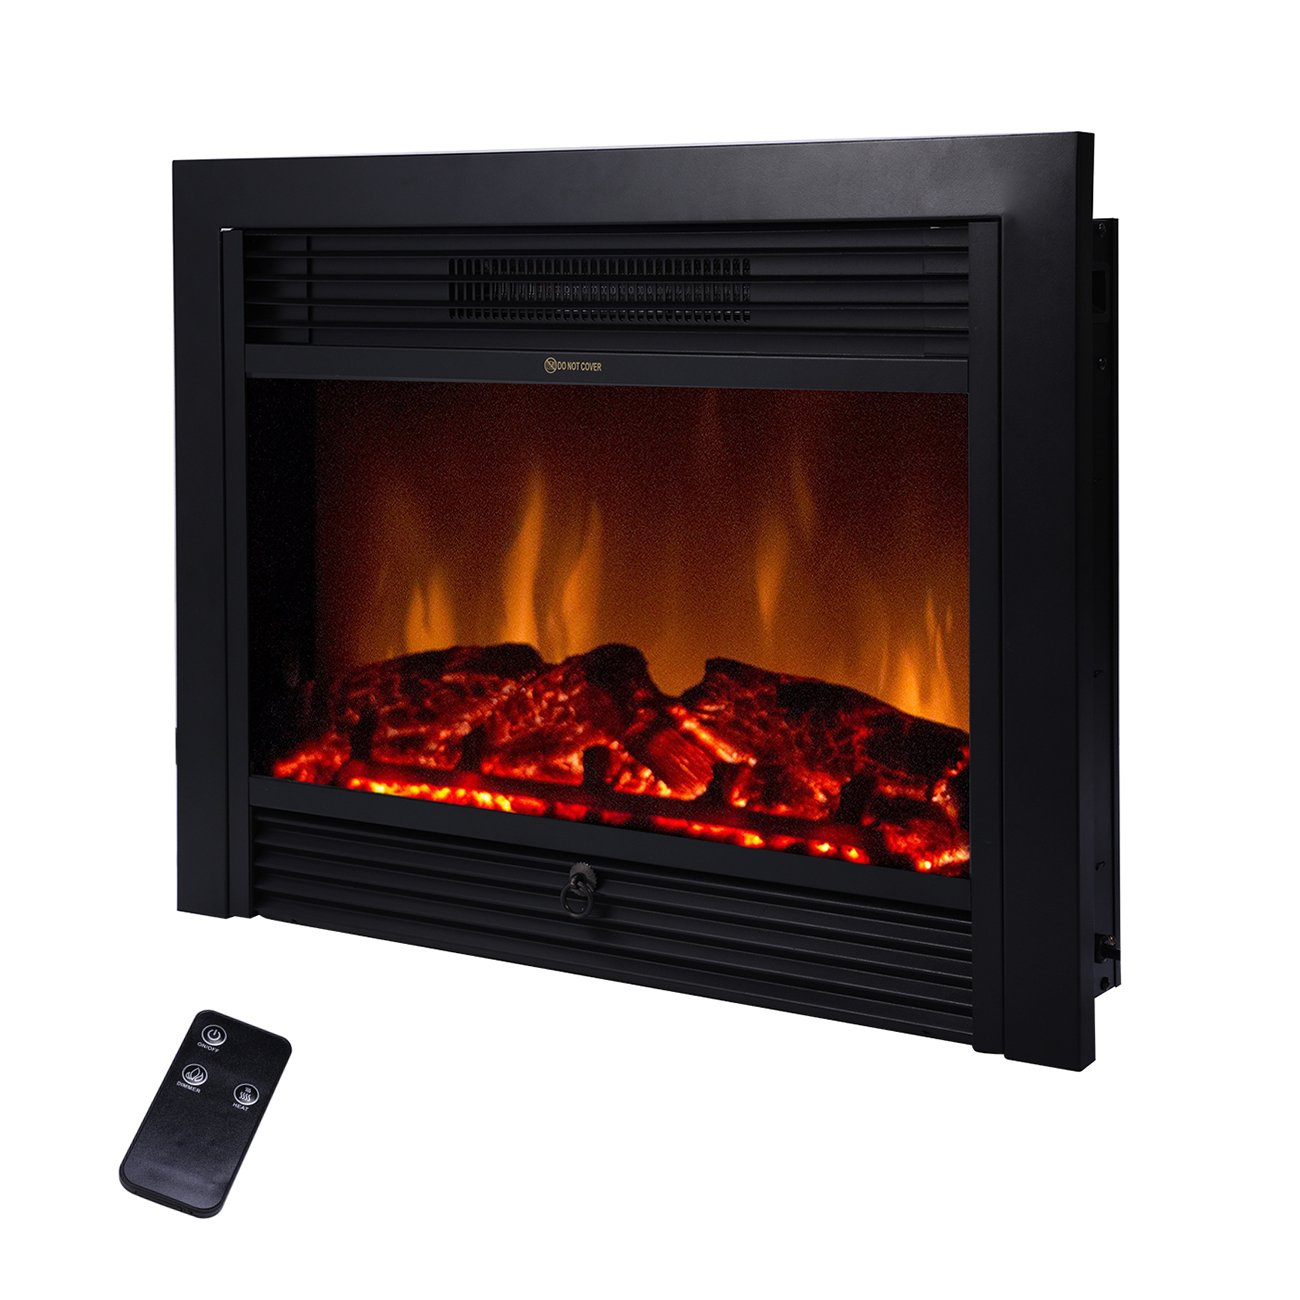 BEAMNOVA 28.5'' Embedded Fireplace Electric Insert Heater Glass View Log Flame w/ Remote Home